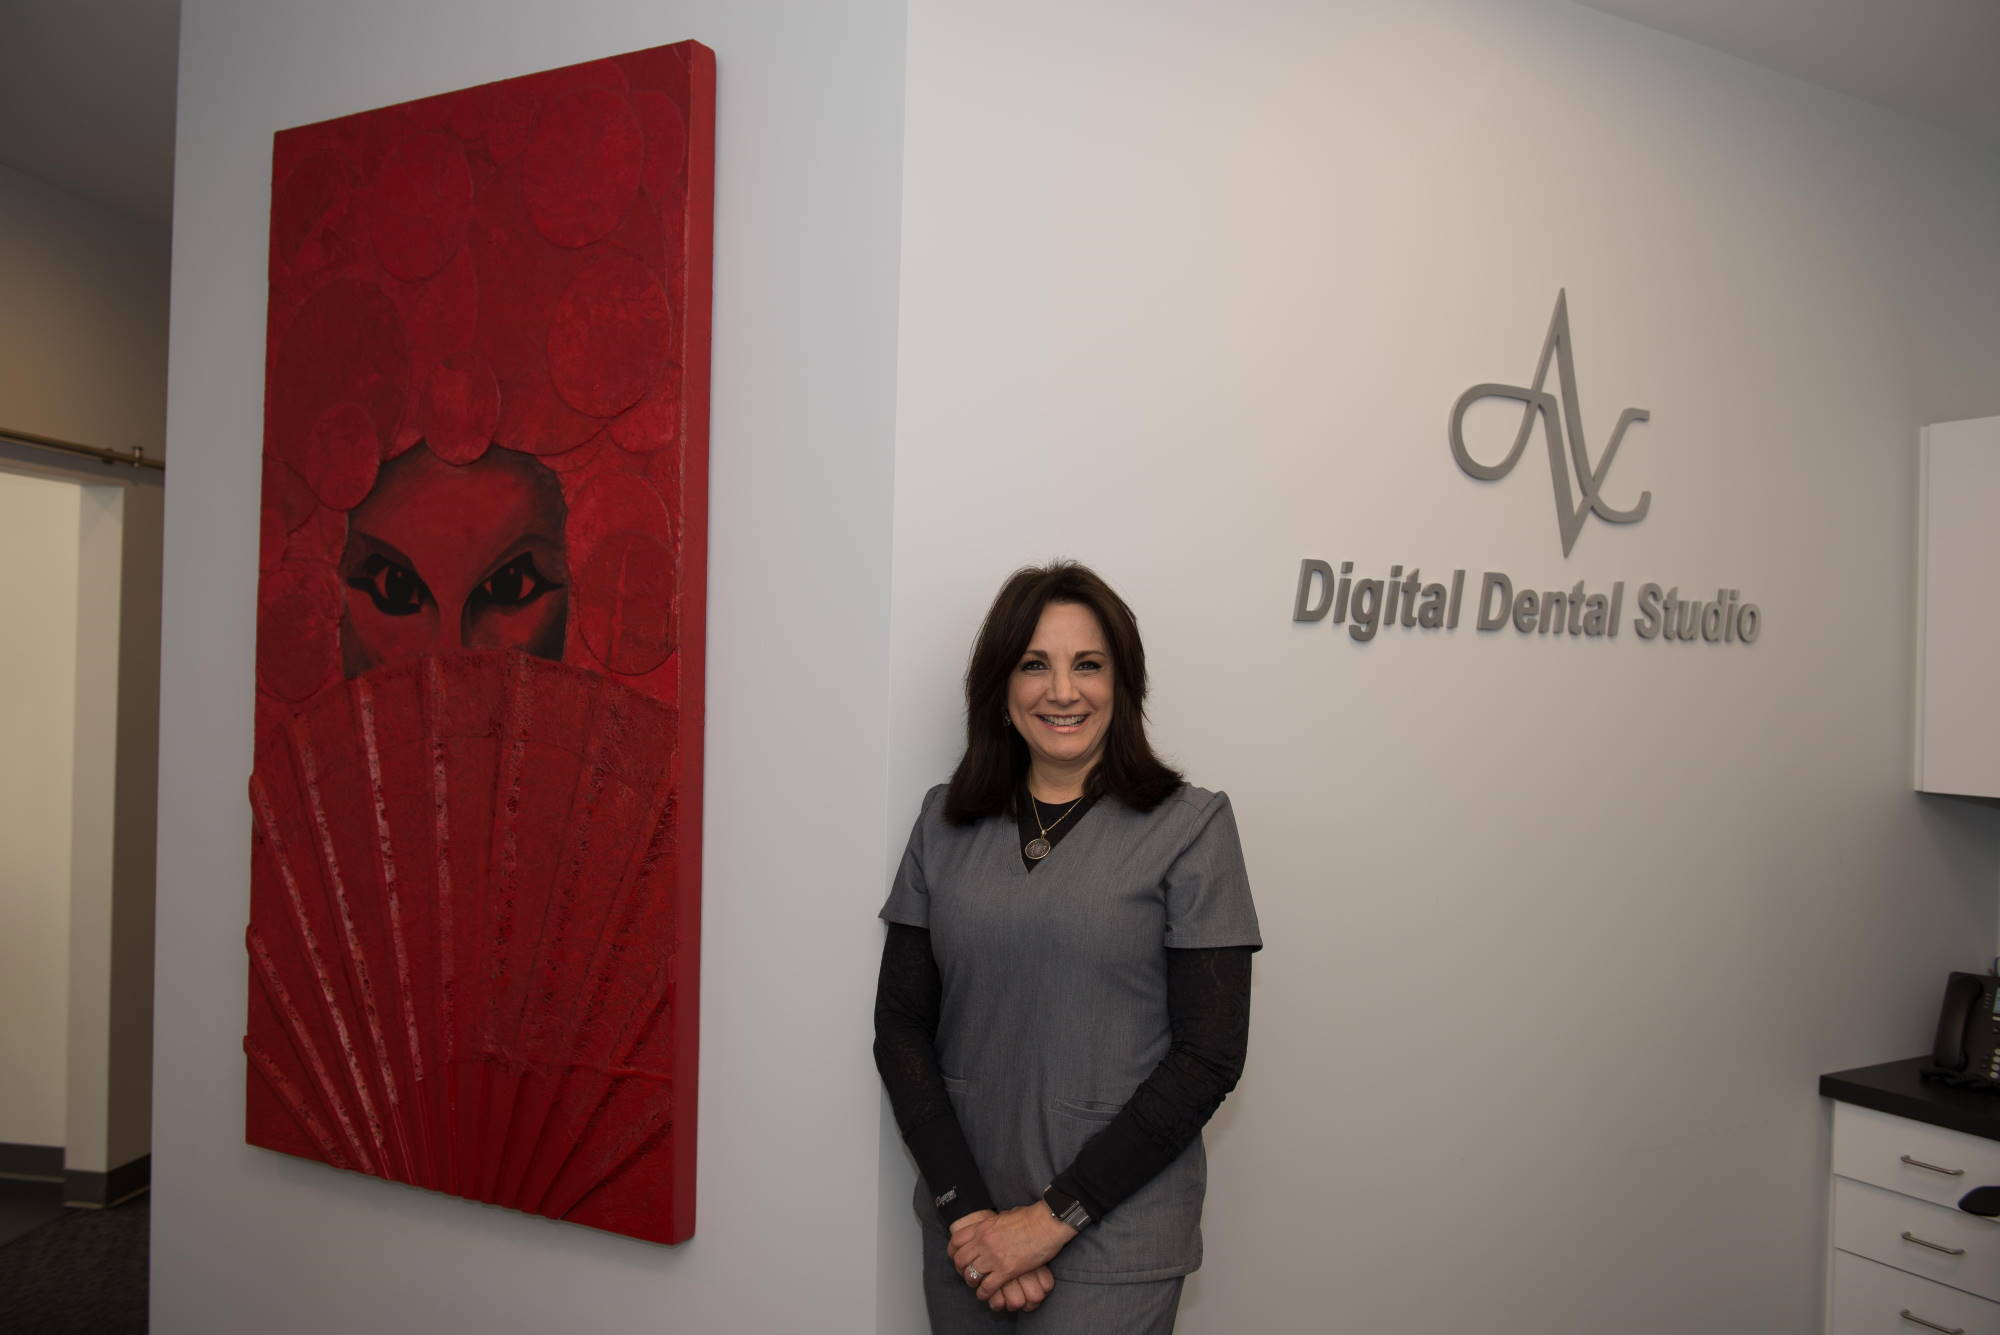 Dr. Anna Vishart at Digital Dental Studio in Dedham